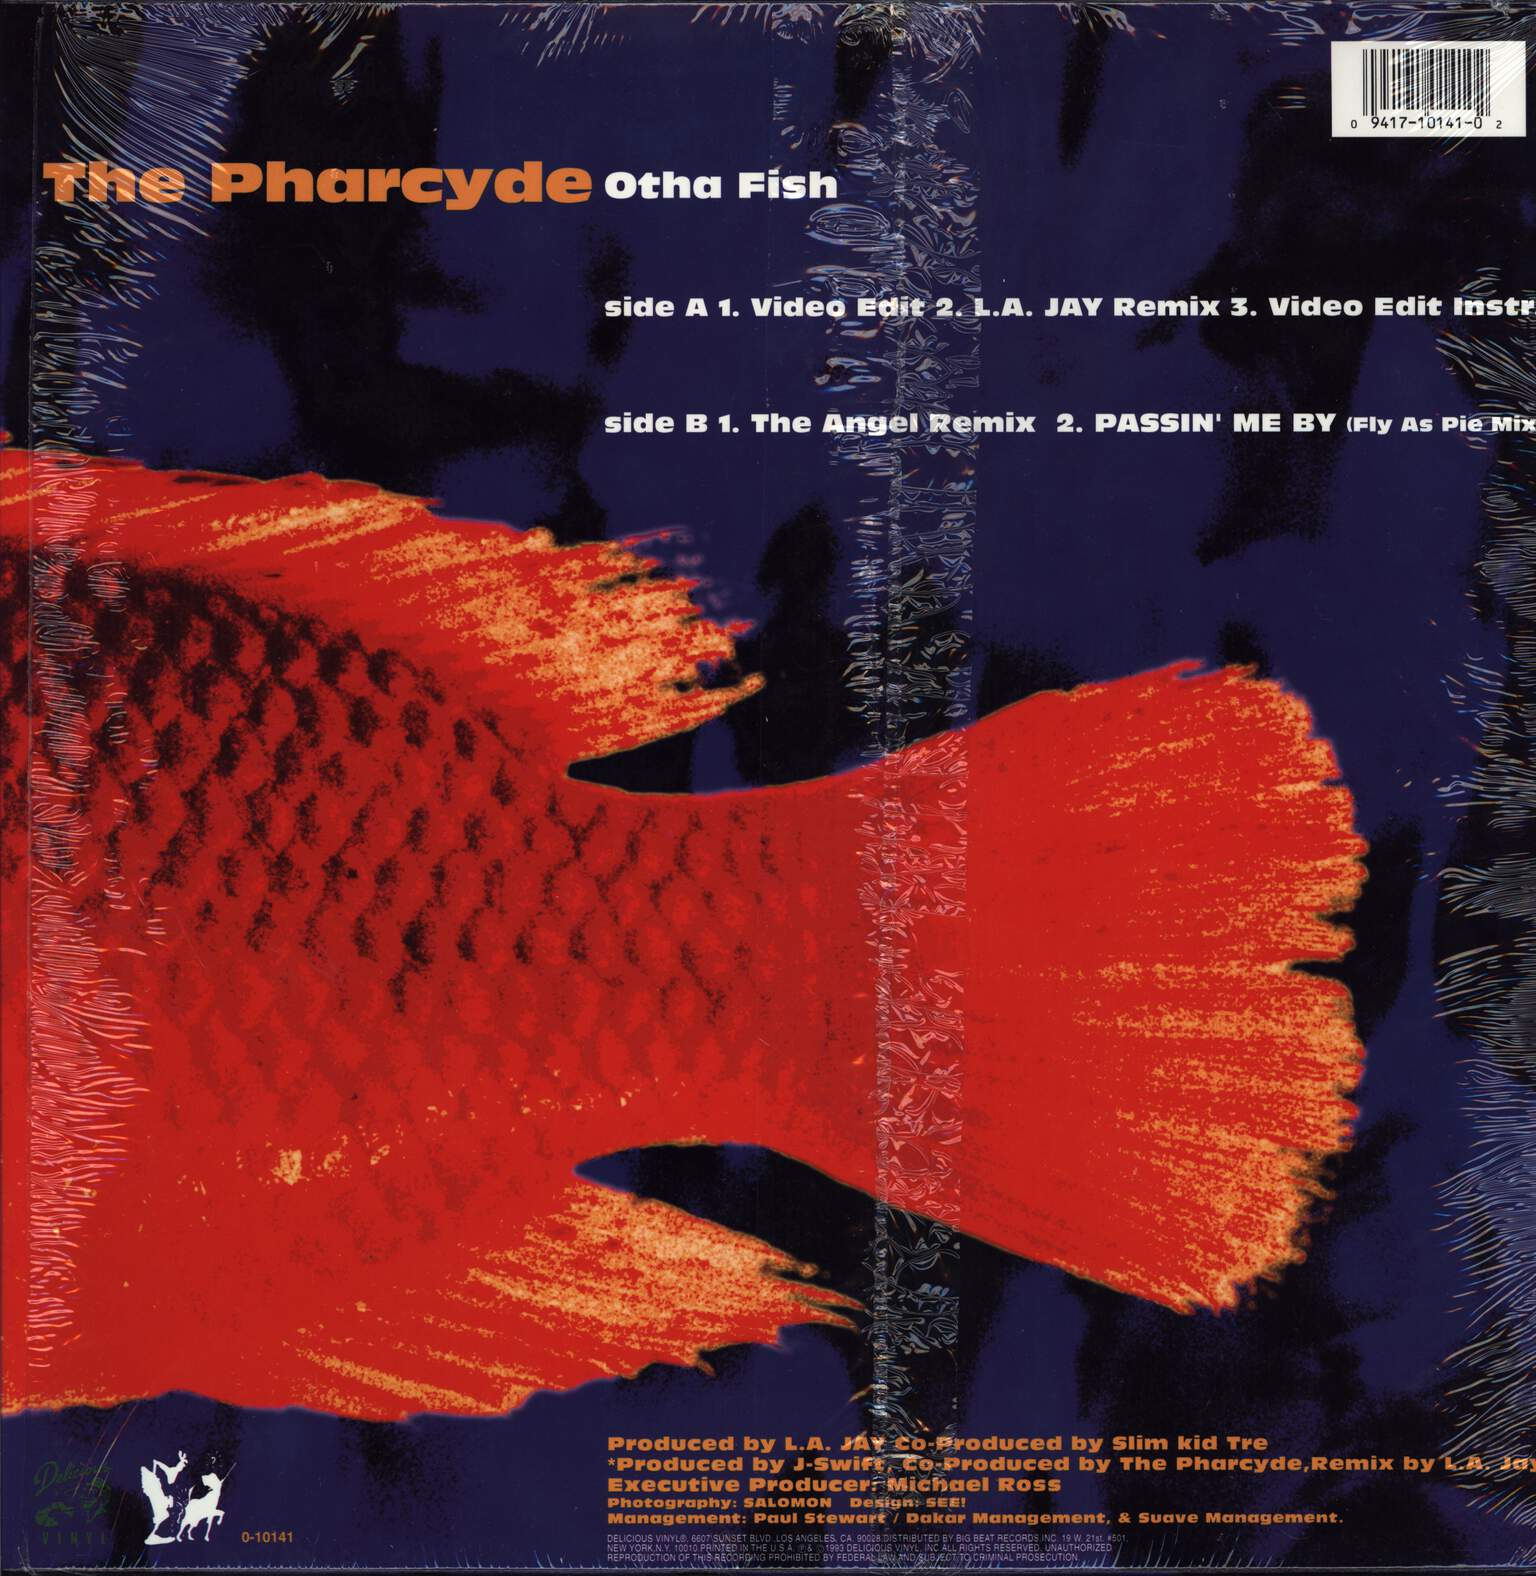 "The Pharcyde: Otha Fish, 12"" Maxi Single (Vinyl)"